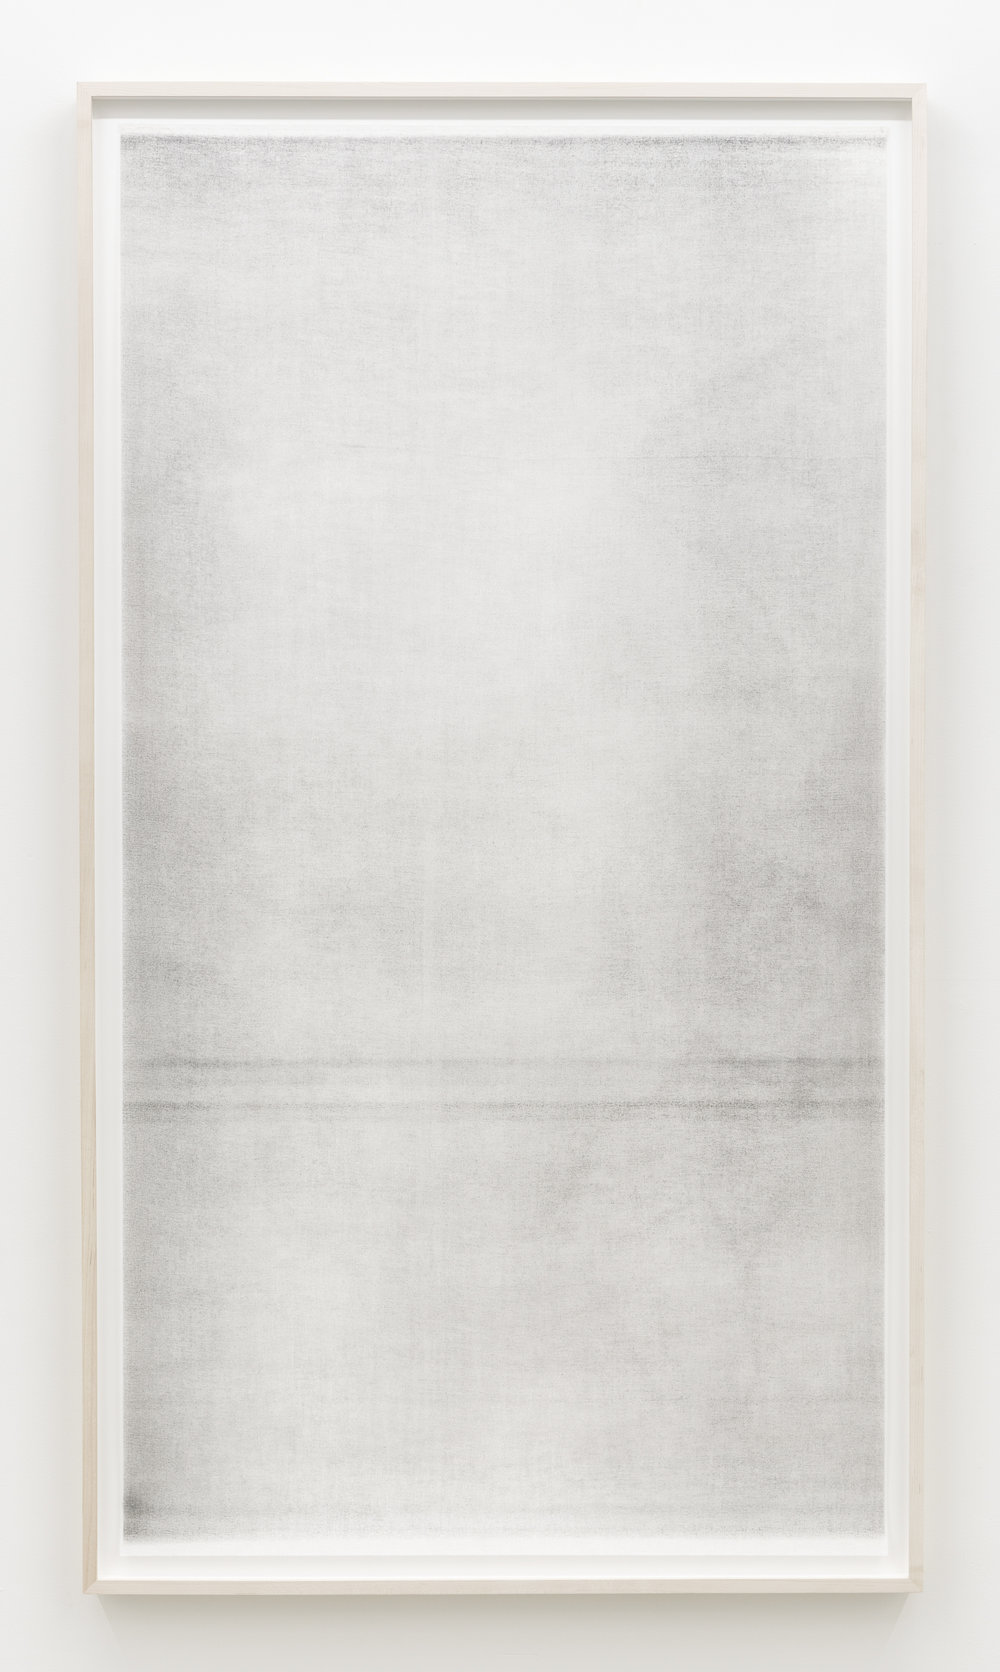 "Untitled (when it settles #4 from the series A Certain Silence), 2017, oil, graphite and charcoal on tarlatan, 59 X 35"" (150 X 89 cm)"